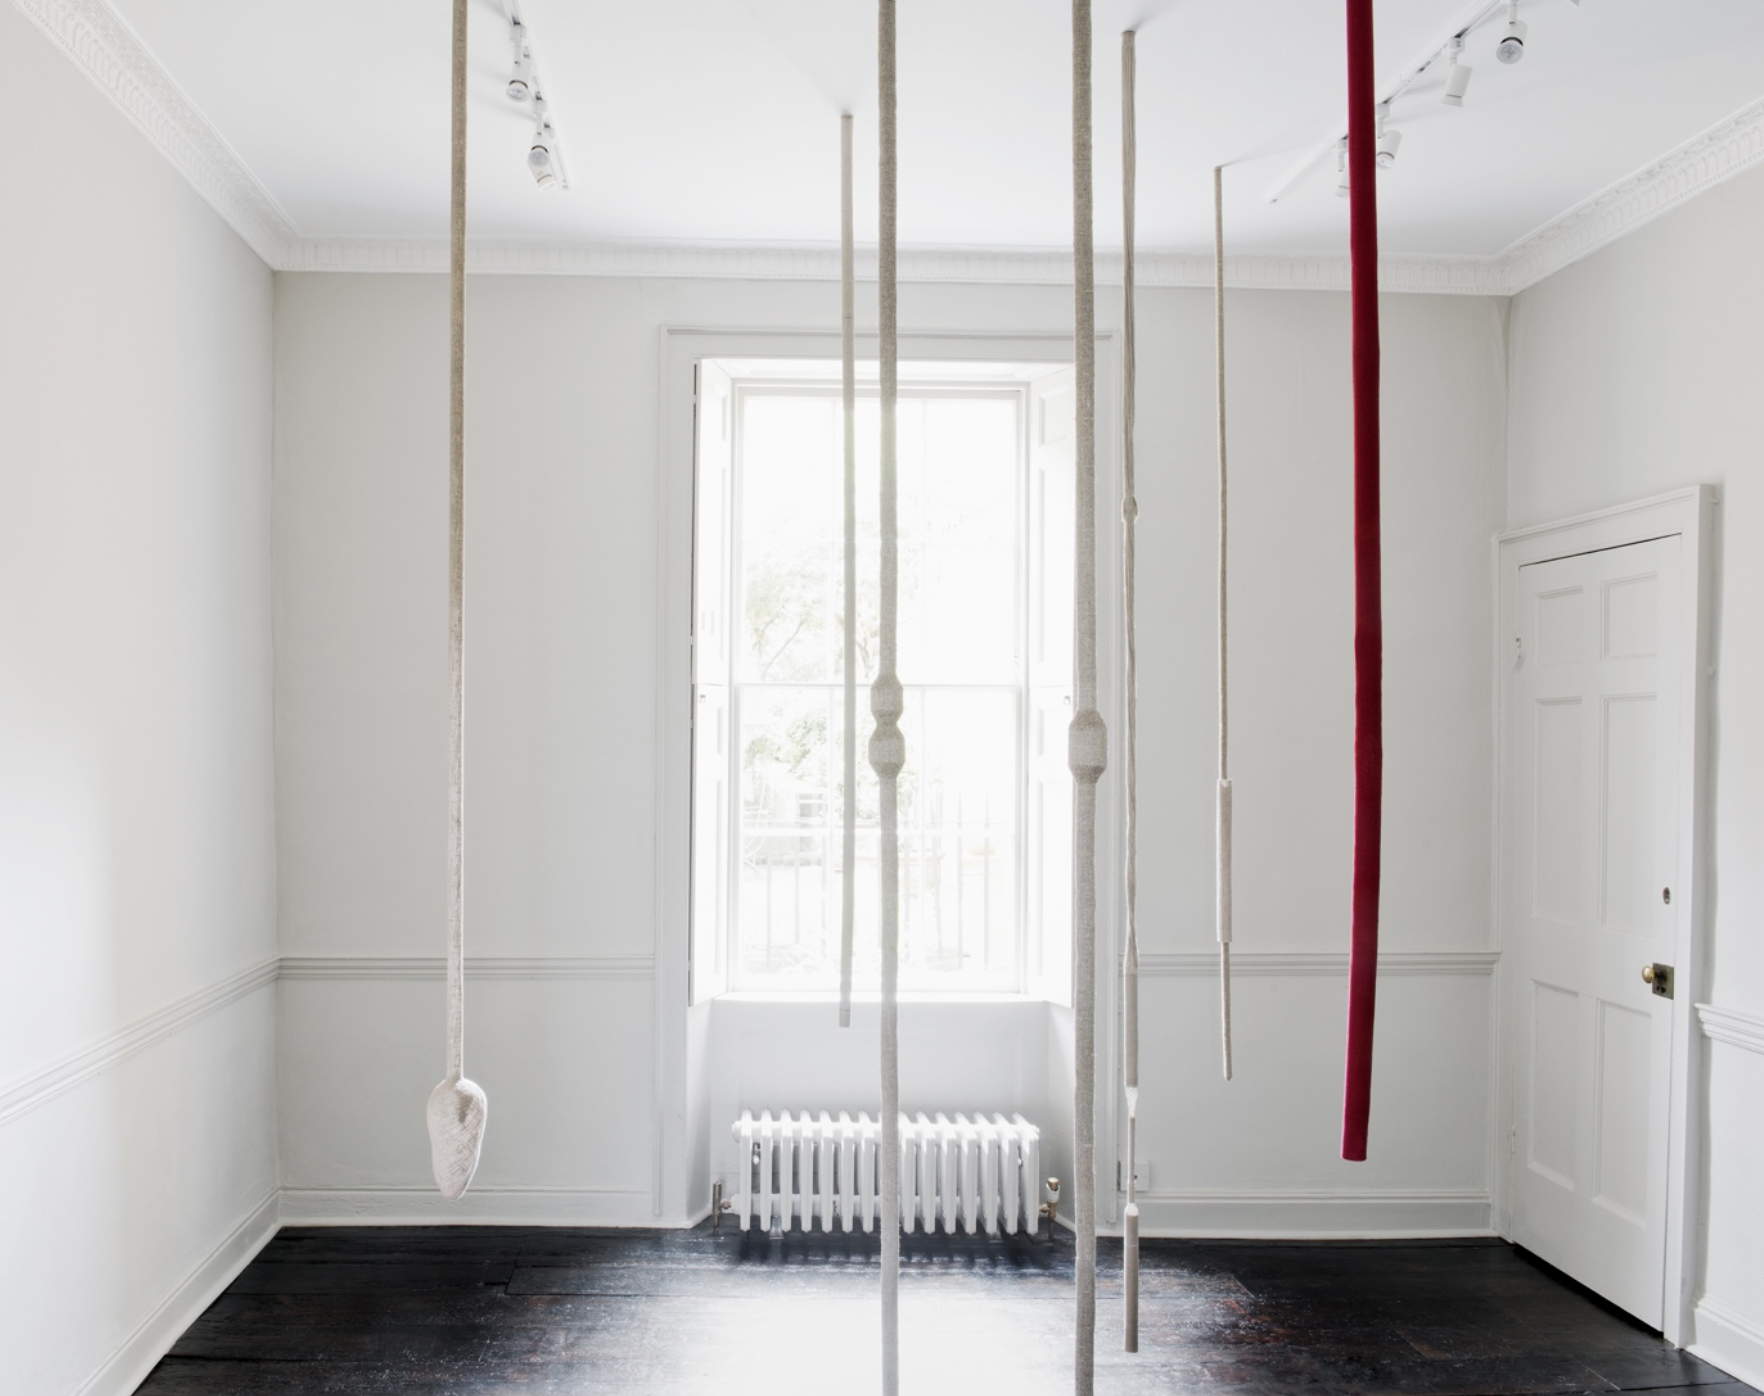 Tonico Lemos Auad,  Seven Seahorses, 2013, linen and thread in 7 parts, dimensions variable